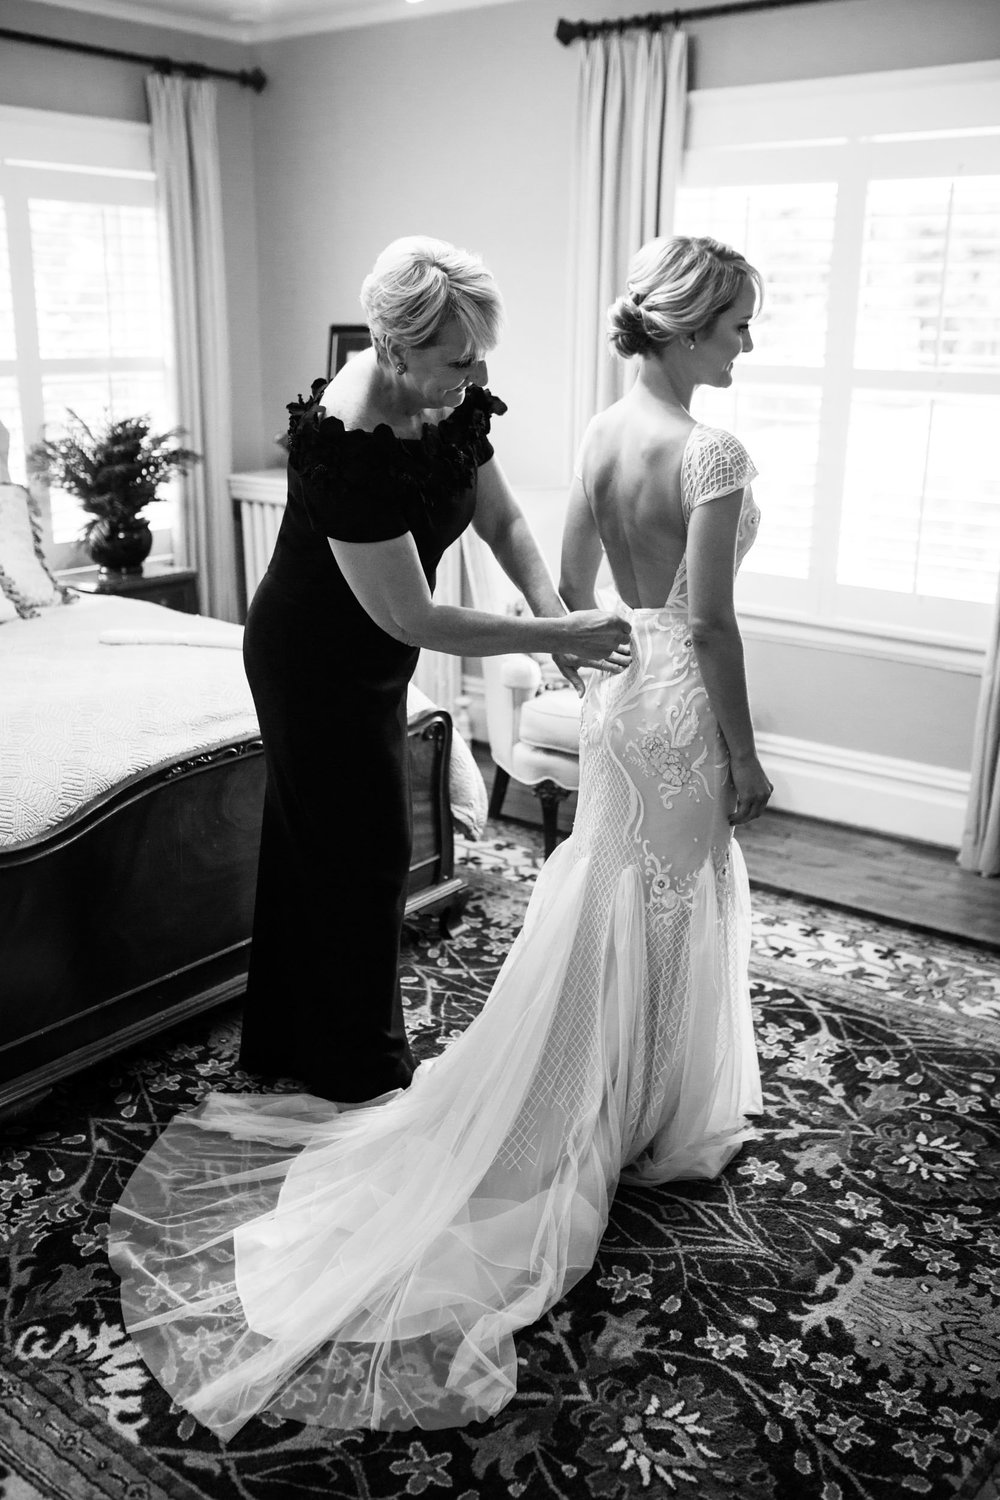 Amy's mother helped her to dress for her wedding at the Bridgeport Art Center in Chicago, Illinois.